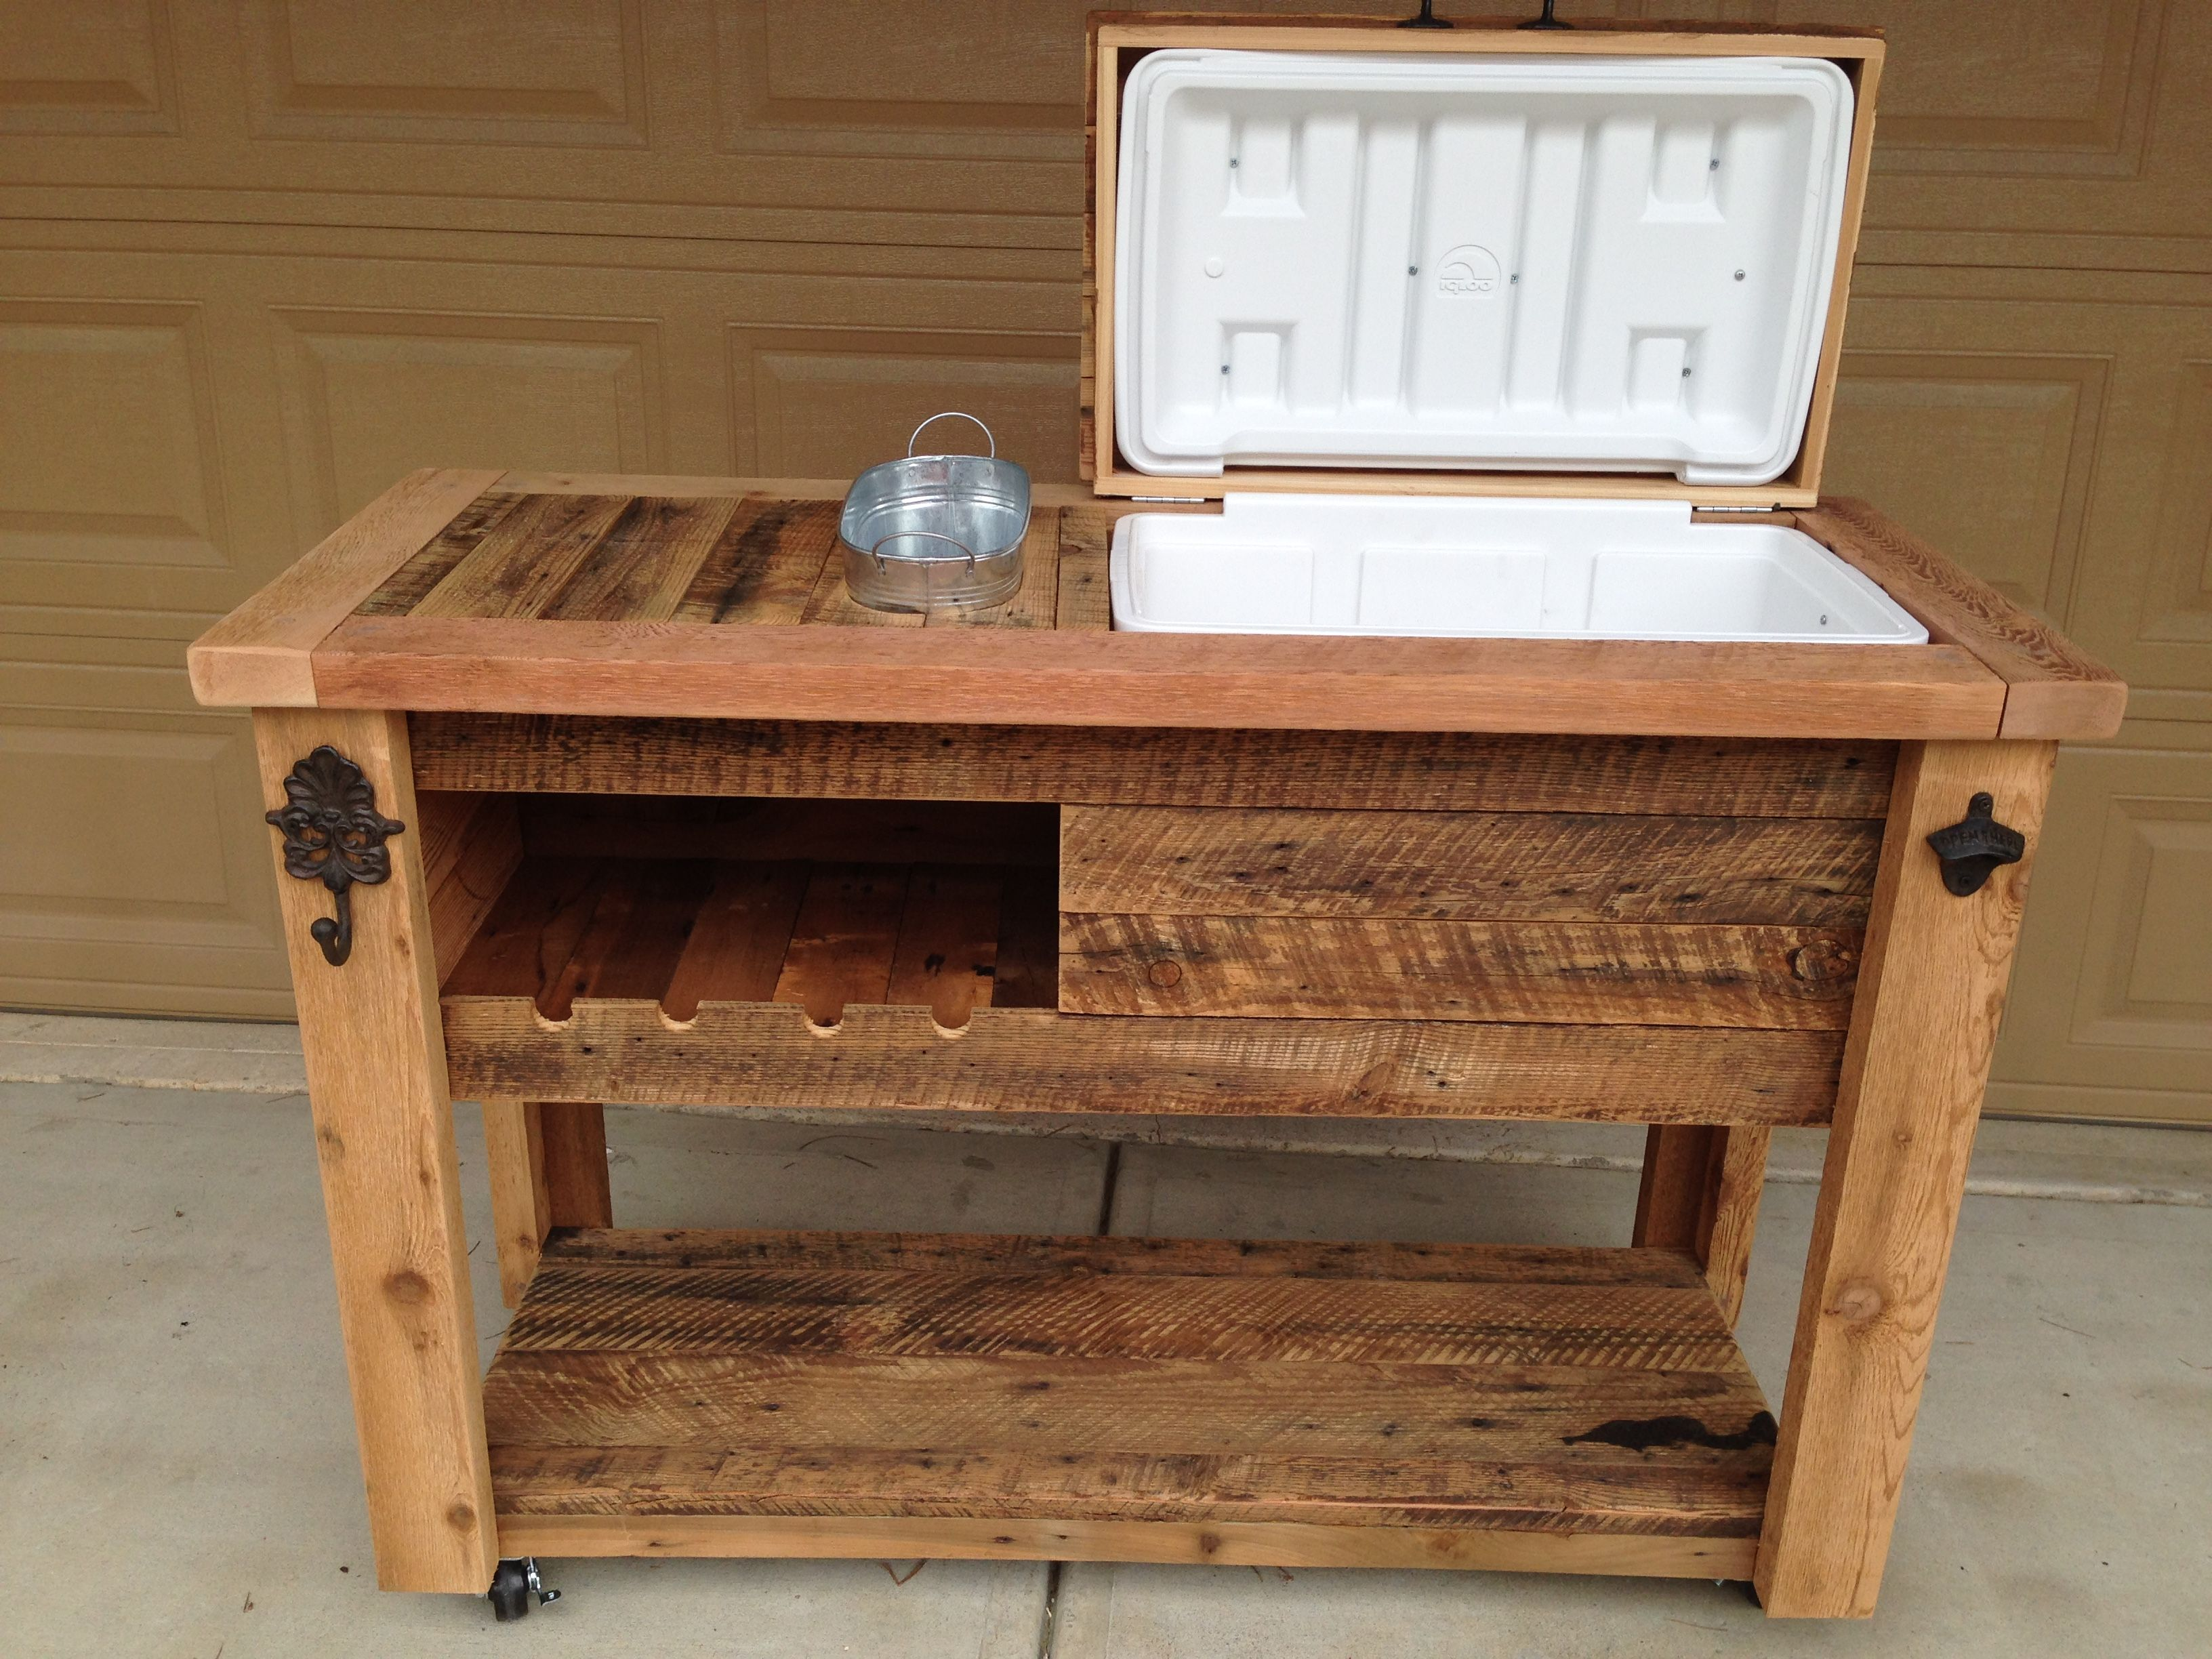 Barn Wood Cooler Table Approximate Product Dimensions 51w X 20d X 36h Approximate Weight 80